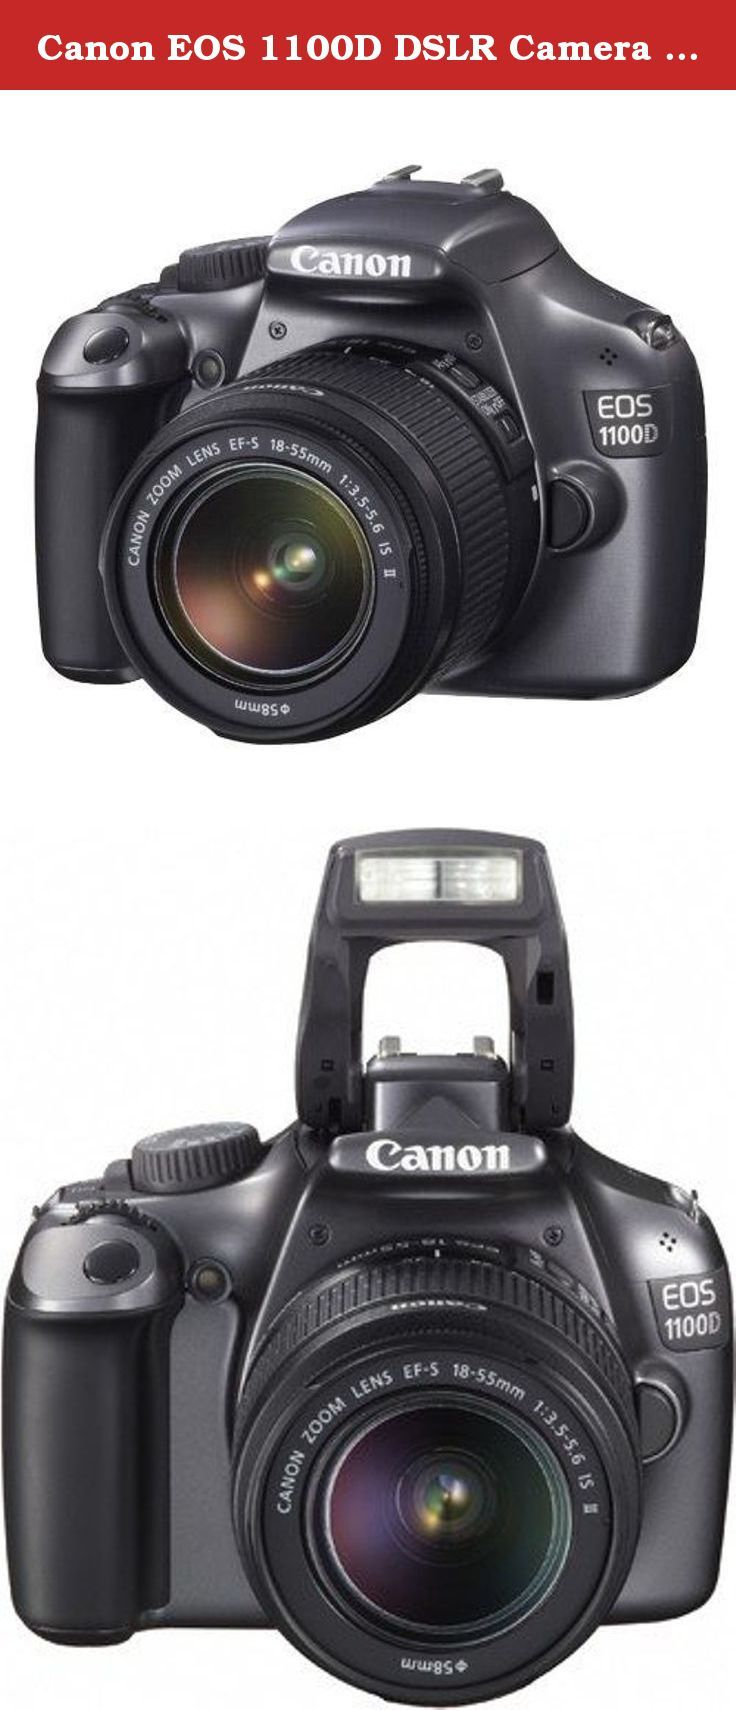 Canon EOS 1100D DSLR Camera and 18-55mm IS II Lens Kit (Gray). About this Camera: The Canon EOS 1100D (also known as the Digital Rebel T3) is the new entry-level model in Canon's extensive range of digital SLR cameras, replacing the 3 year old 1000D model. Aimed at first-time DSLR users, the 1100D inherits features from both the equally new and more expensive EOS 600D and the previous 1000D. It has a 12 megapixel CMOS sensor, 2.7 inch LCD screen, 3fps continuous shooting mode, 9 autofocus...